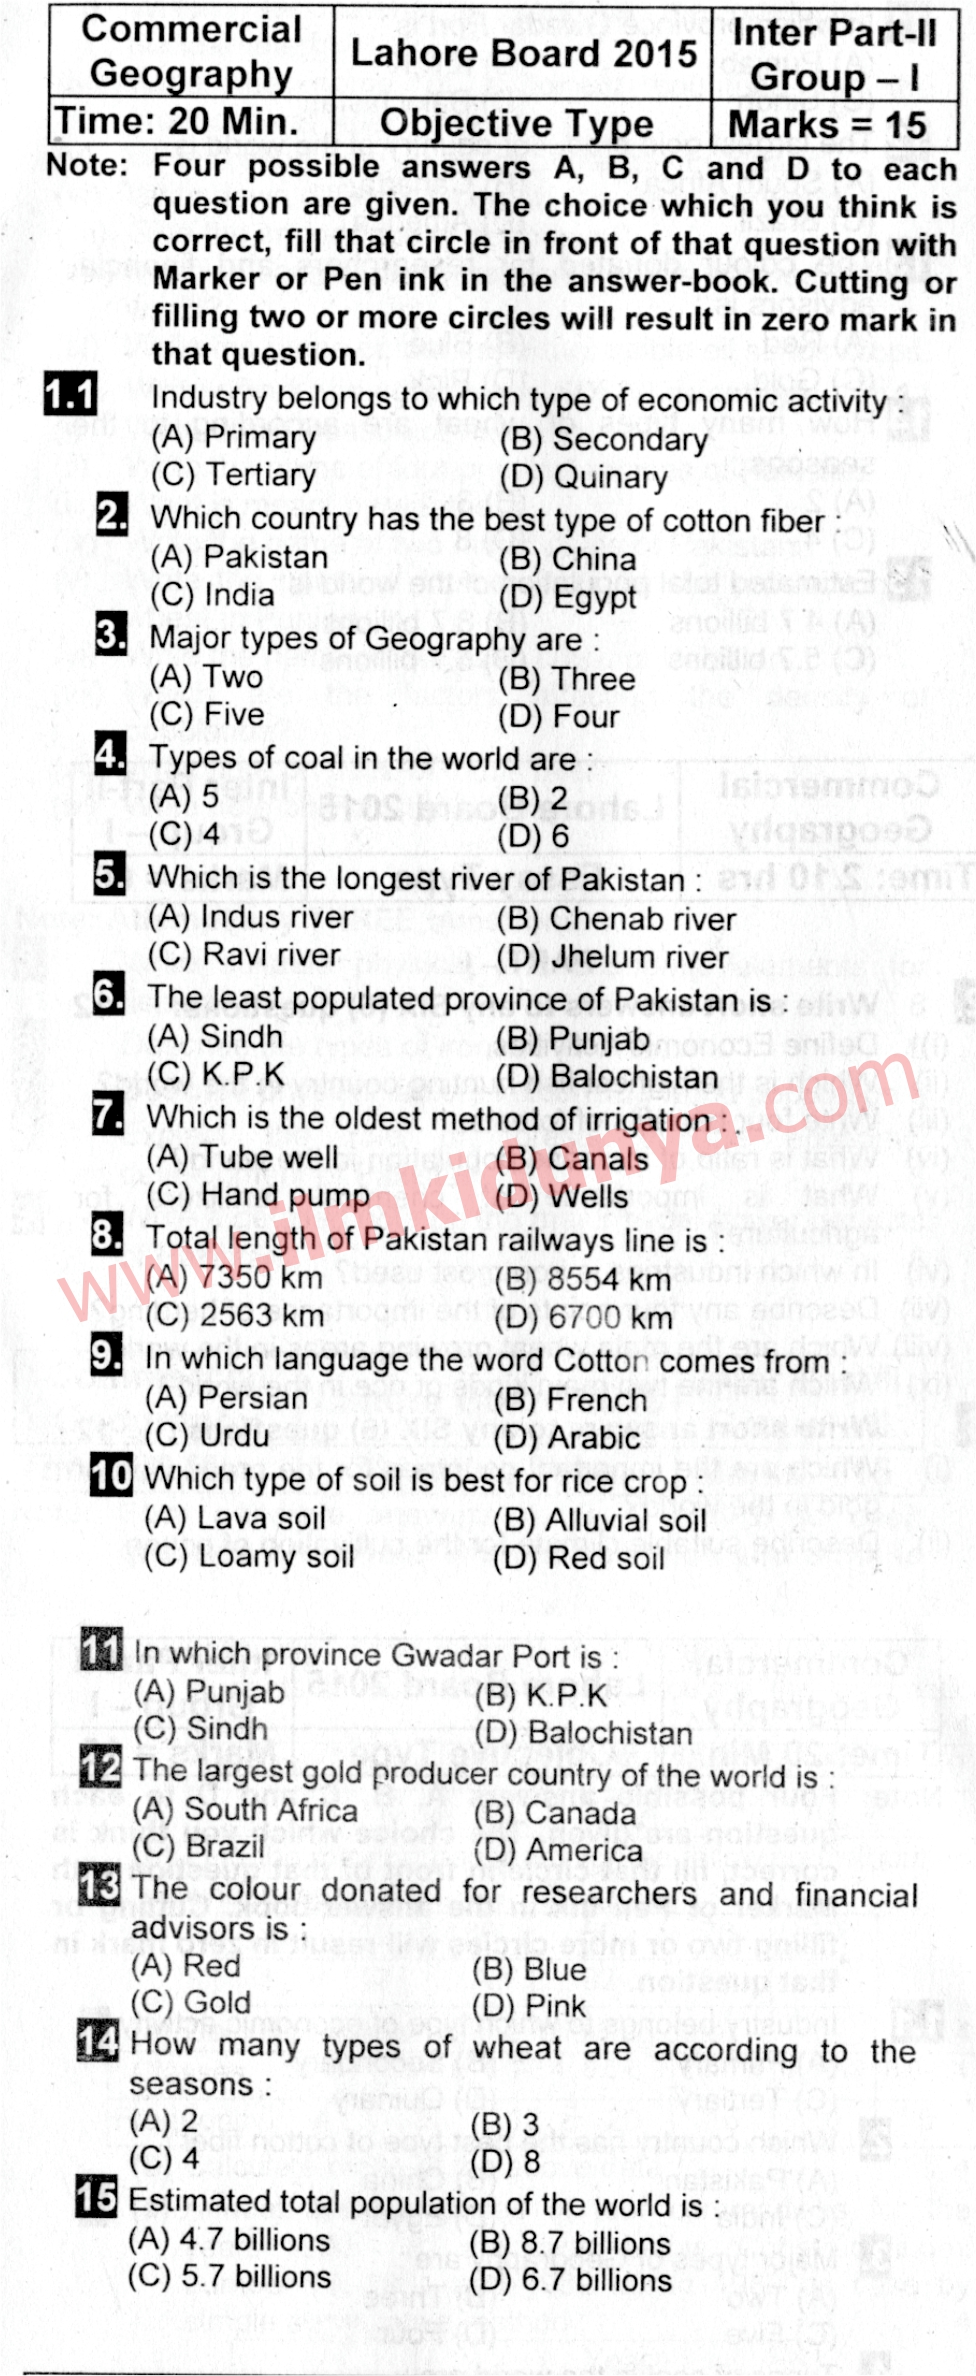 Past Papers 2015 Lahore Board ICom Part 2 Commercial